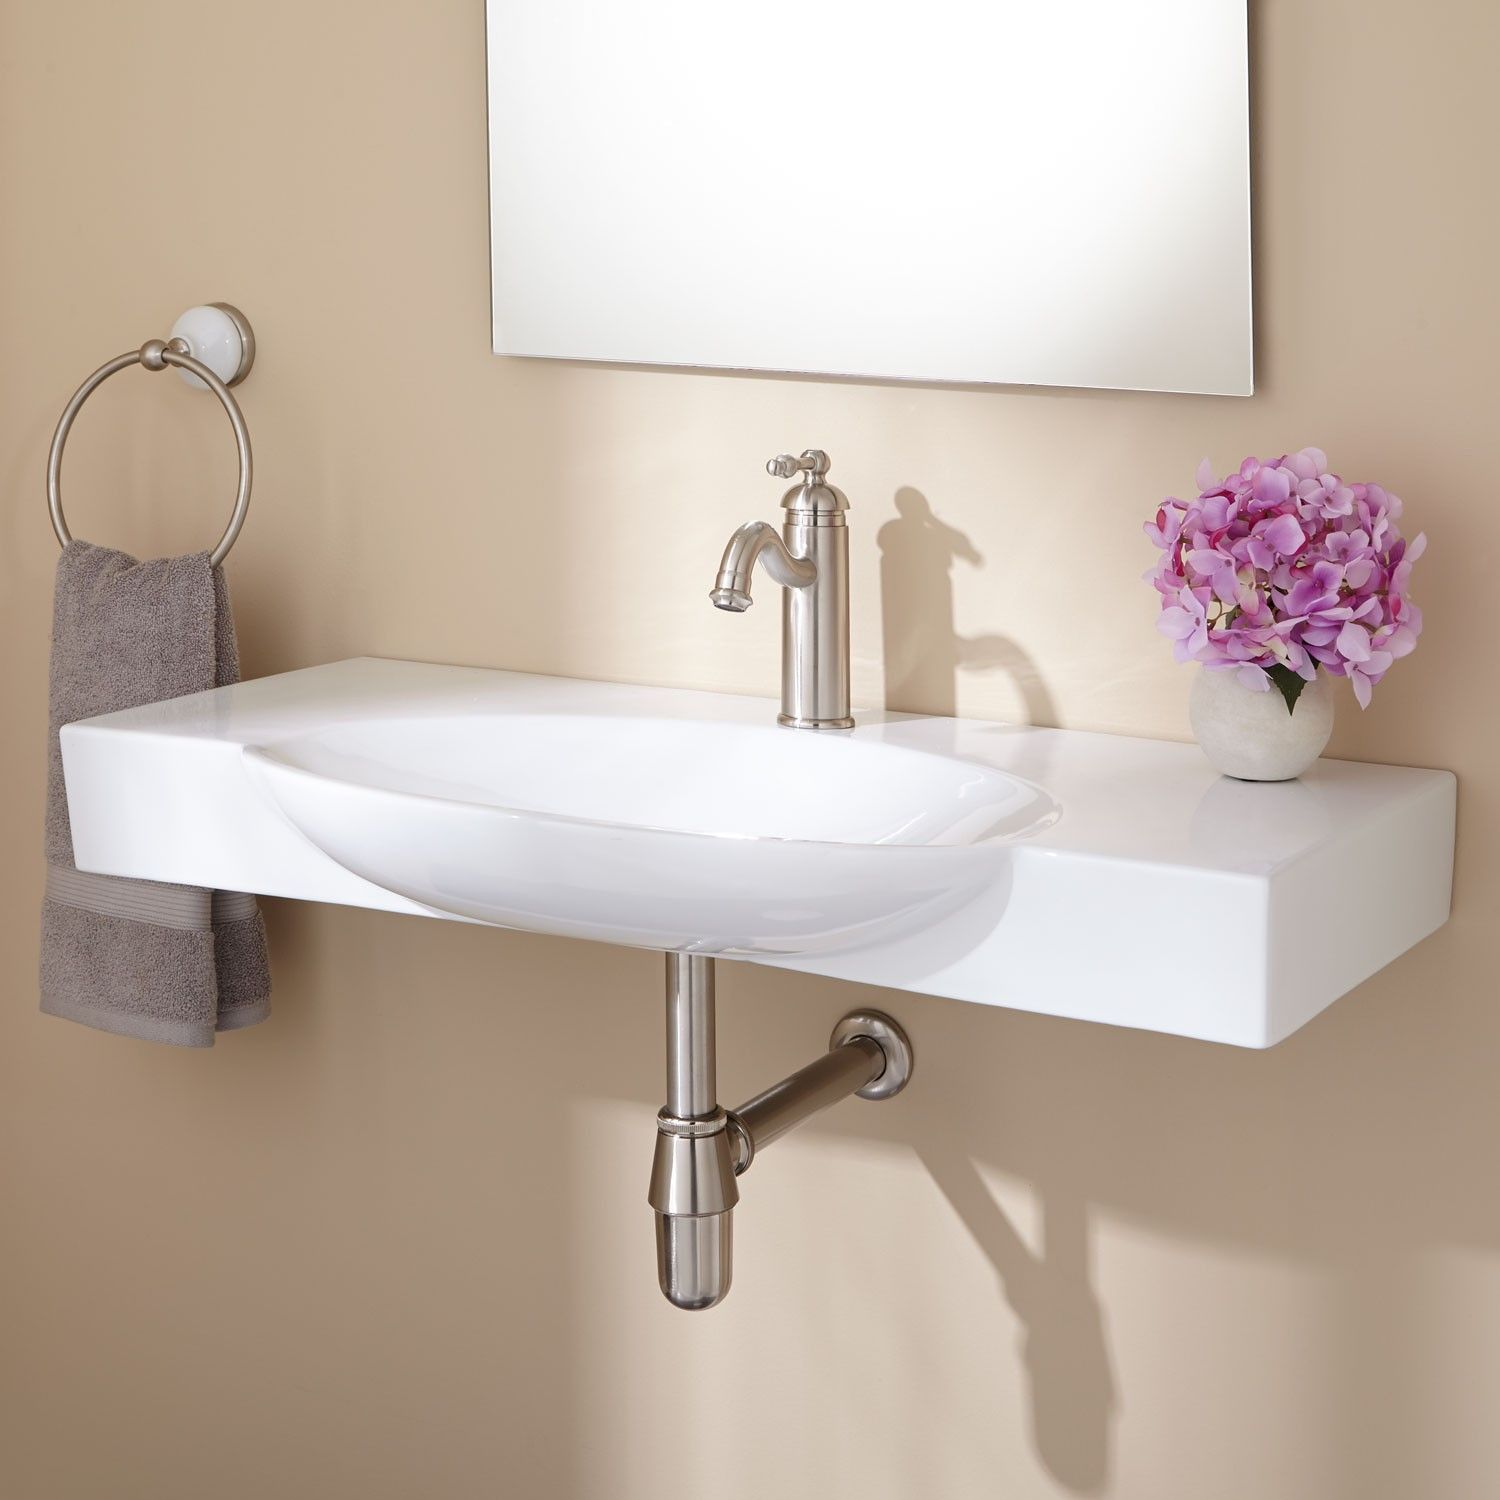 Charmant Hiott Wall Mount Bathroom Sink   Bathroom Sinks   Bathroom